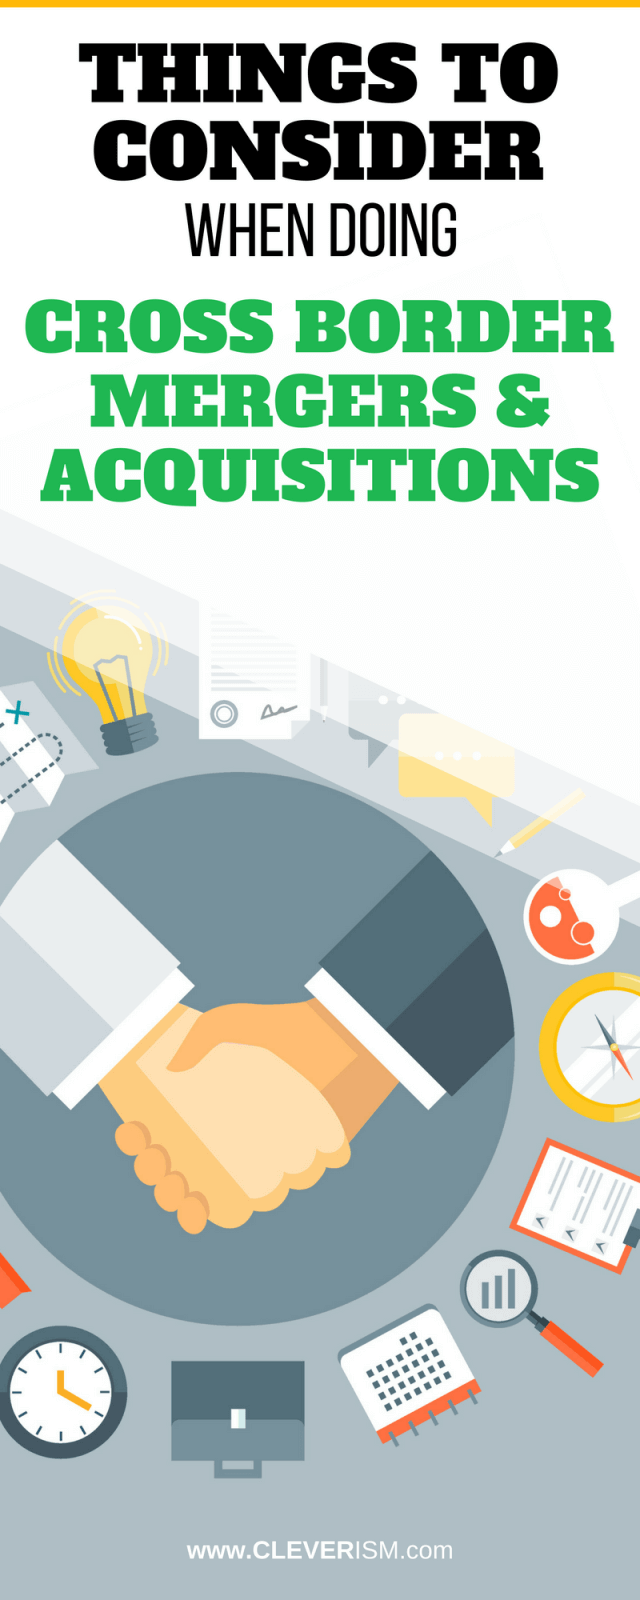 factors to consider before merger and acquisition With mergers and acquisitions, growth occurs by finding complementary alliances among the competition although an ample upside is associated with a successful merger or acquisition, potential risks dictate prudence before companies tie the knot.